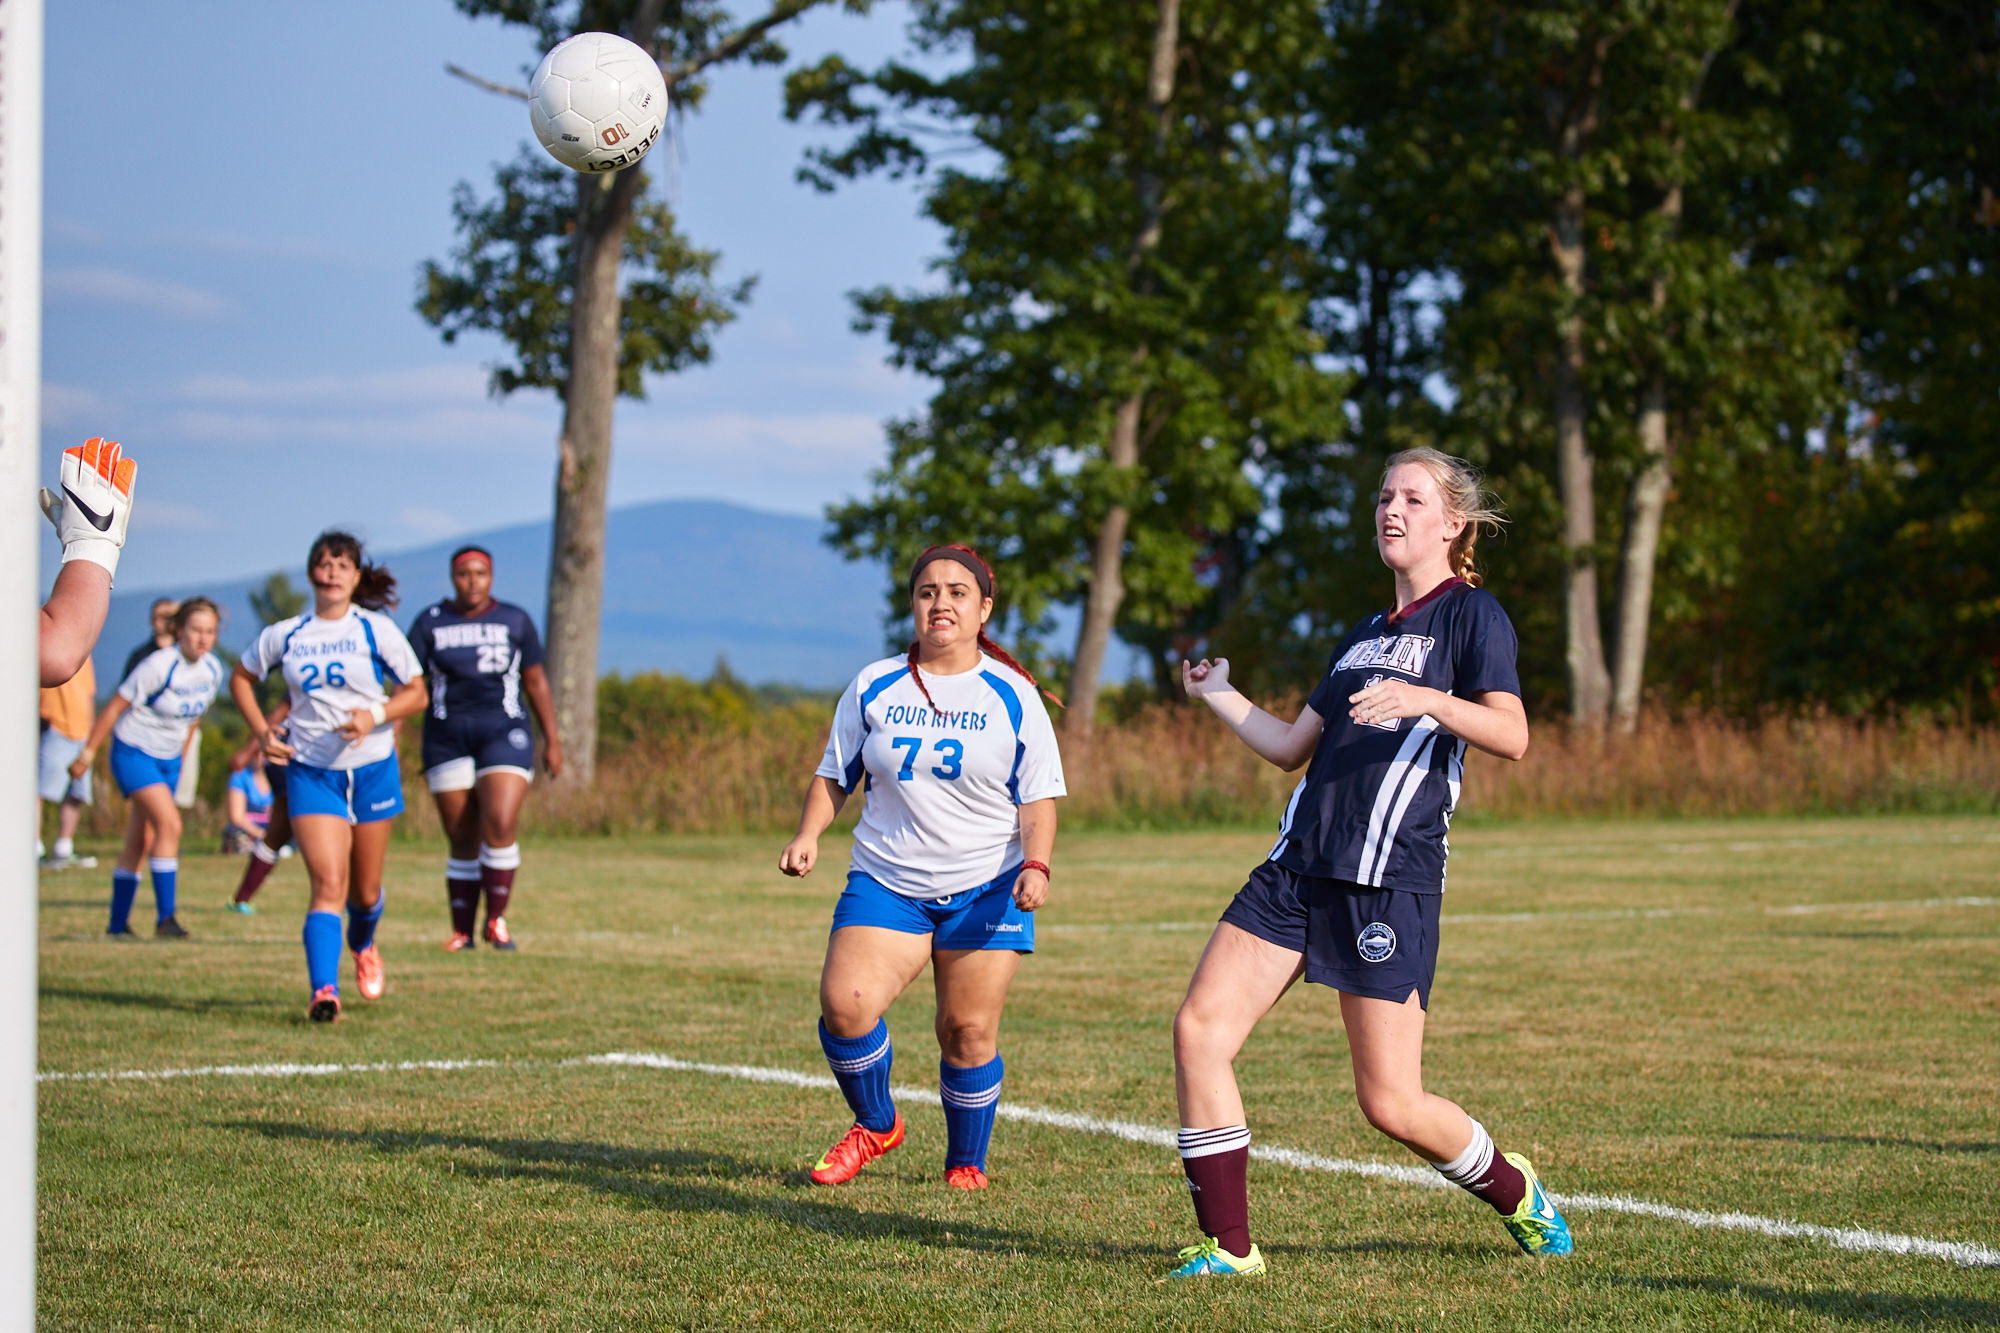 Girls Varsity Soccer vs. Four Rivers Charter Public School - September 23, 2016 - 41517- 000139.jpg